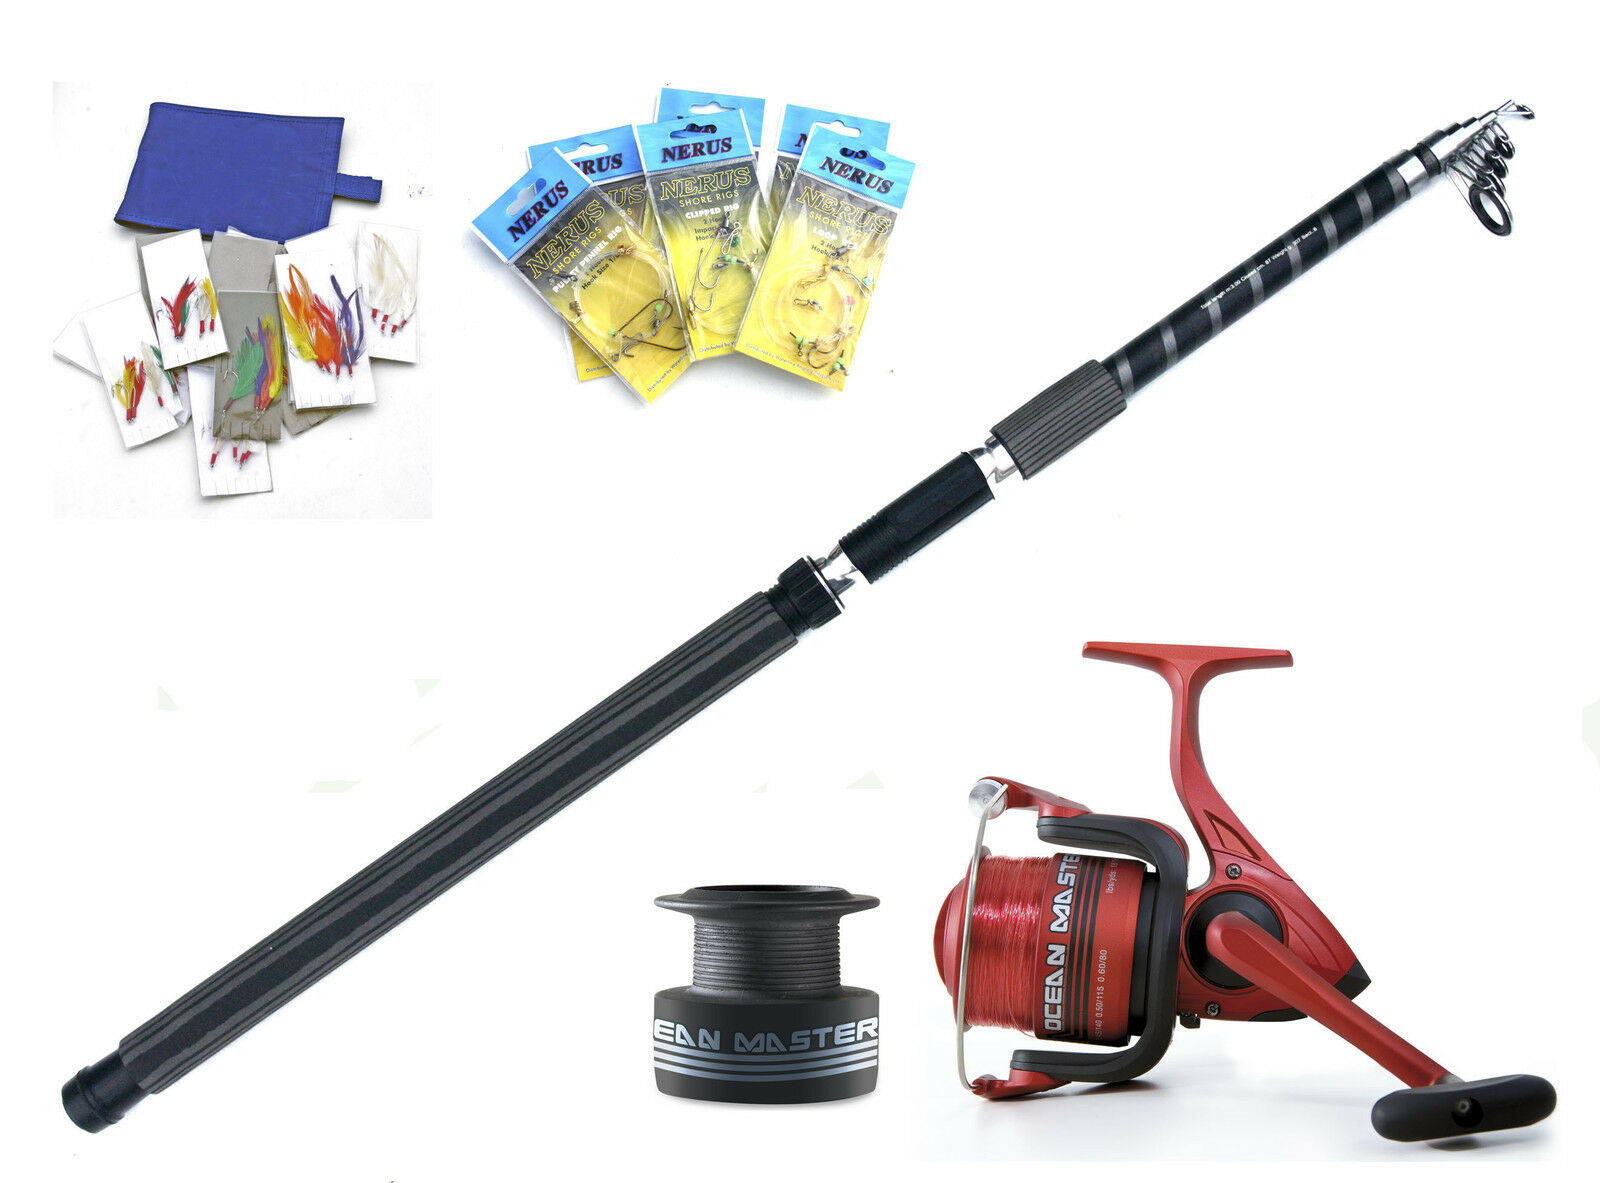 Compact telescopic beachcaster 3-6oz 10ft rod & 080 reel combo + Rigs & traces